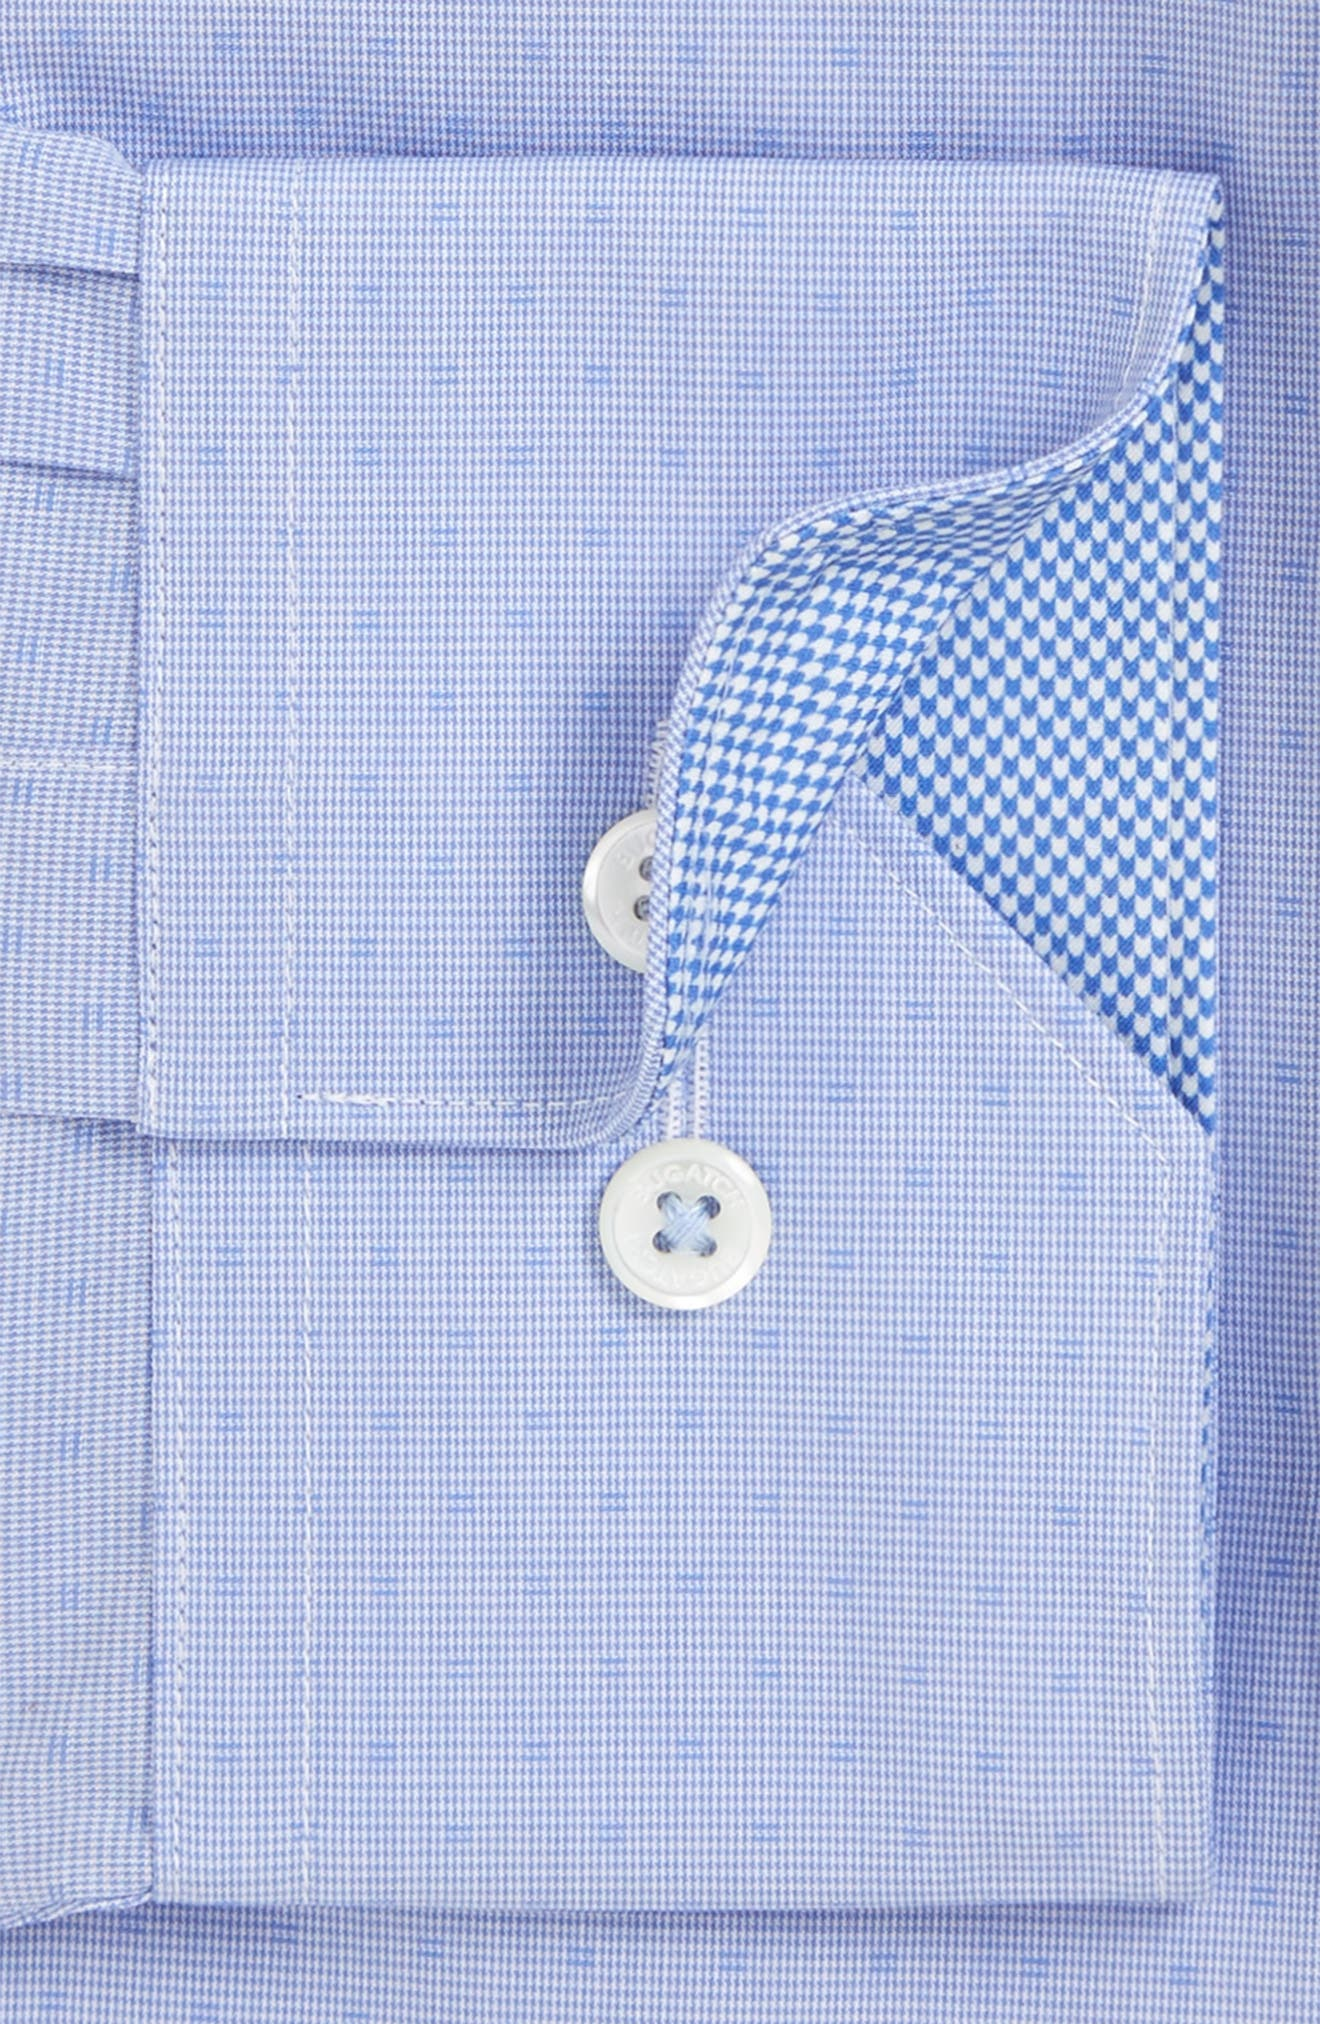 Alternate Image 2  - Bugatchi Trim Fit Dot Dress Shirt